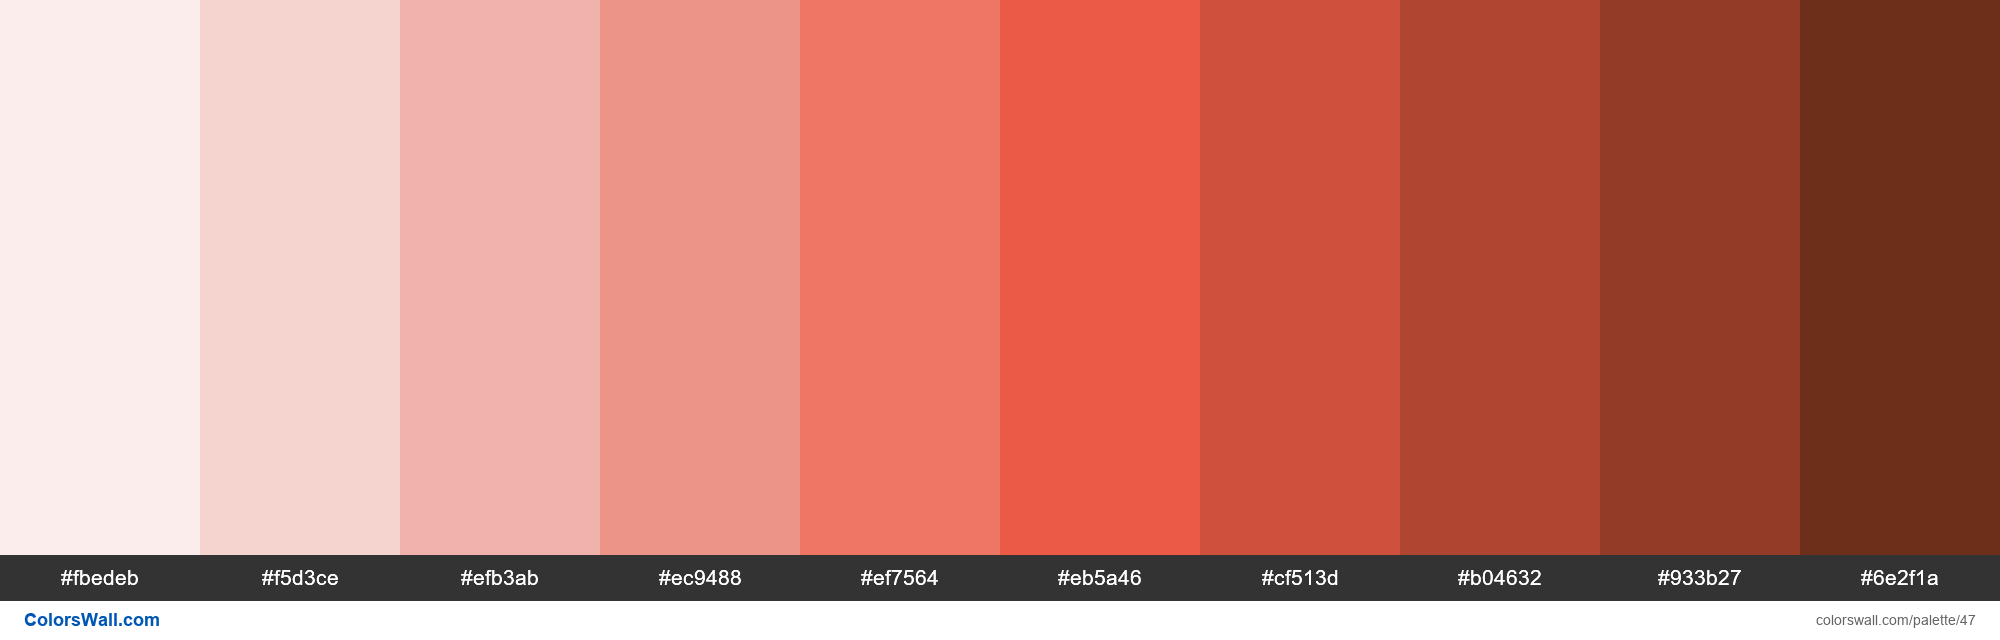 Trello Red colors palette - #47